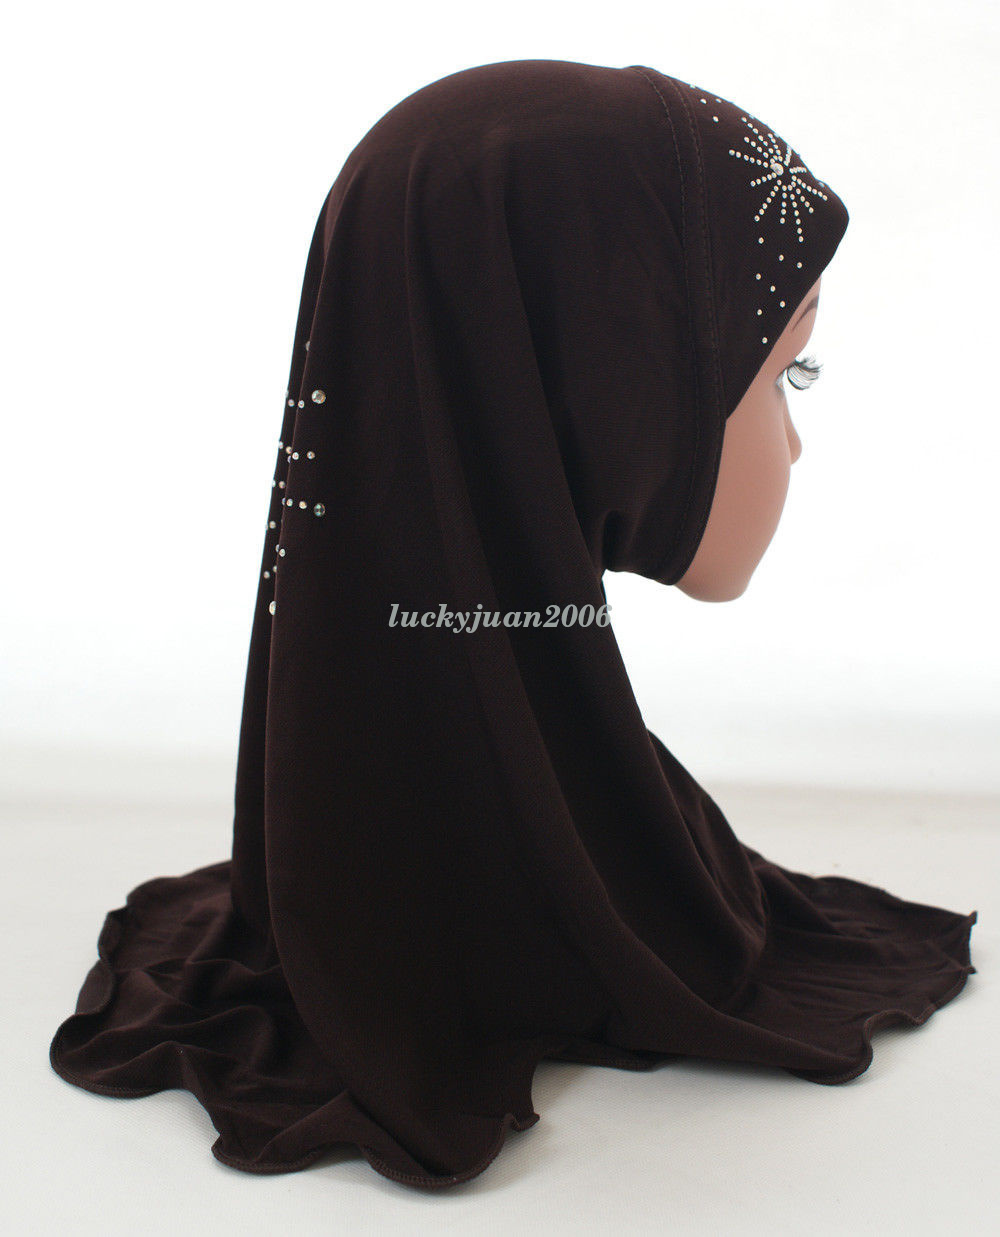 Girls-Kids-Muslim-Hijab-Hats-Islamic-Arab-Scarf-Caps-Shawls-Amira-Headwear-3-8Y thumbnail 25